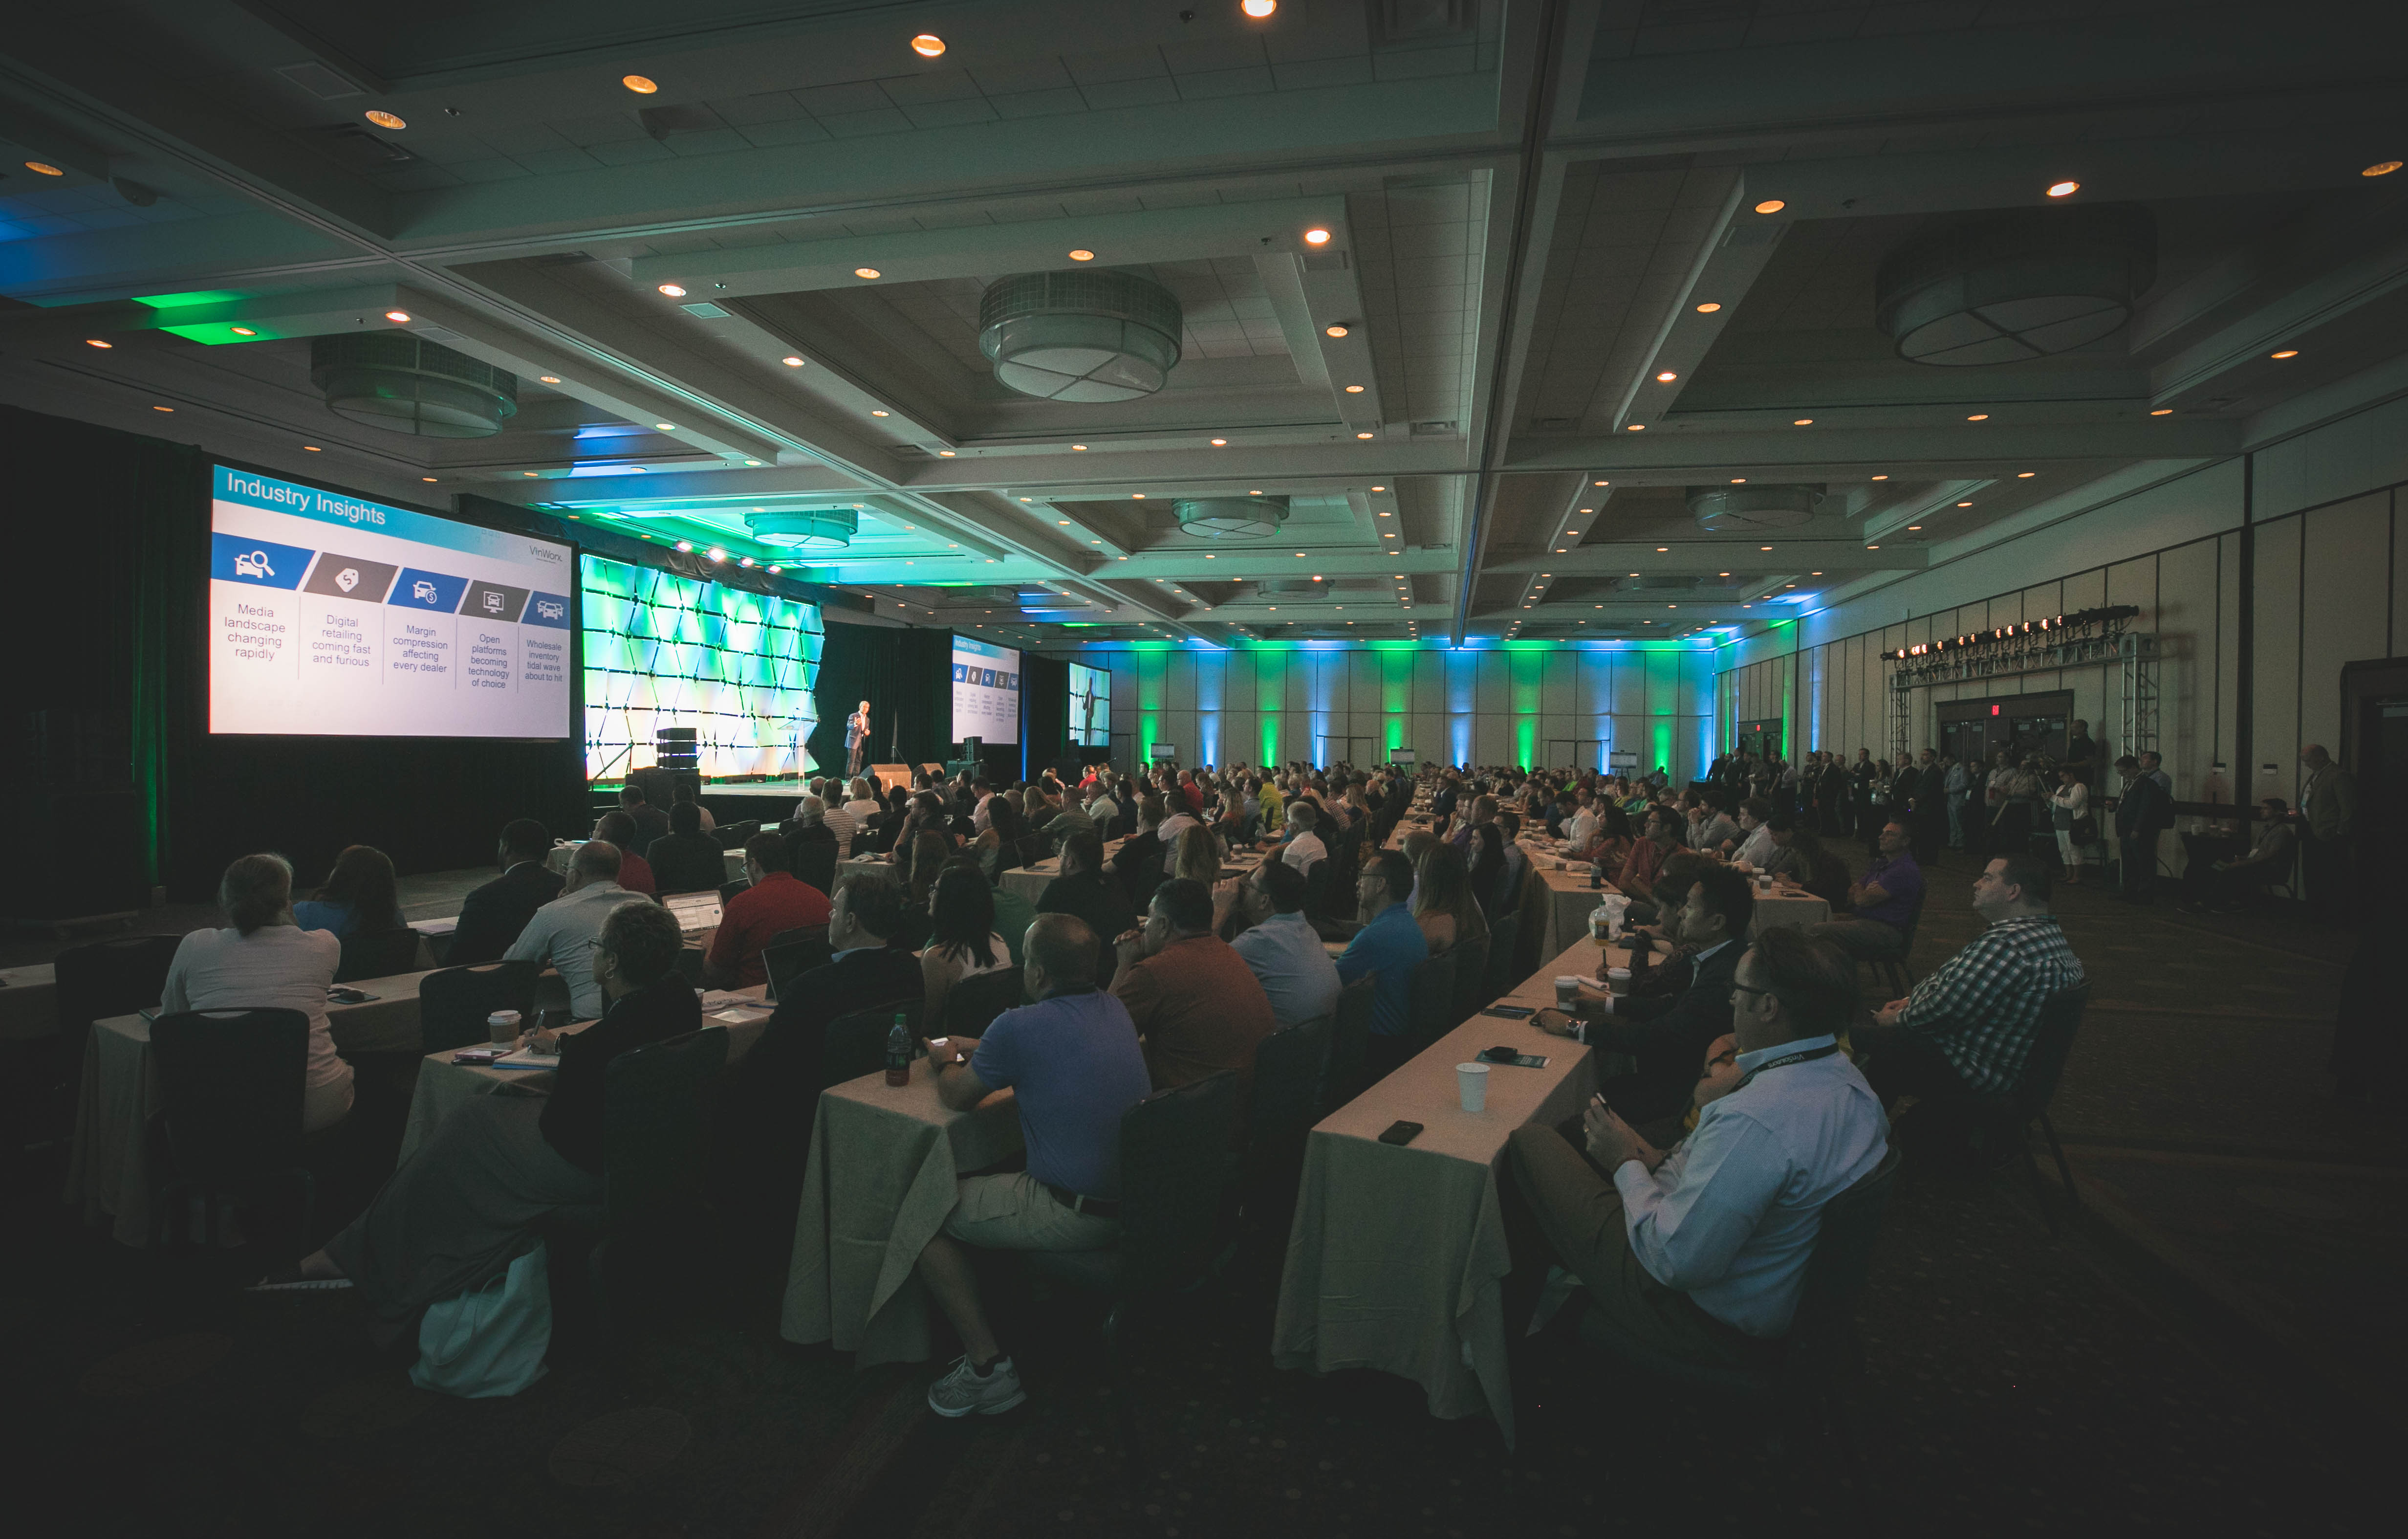 More than 300 dealers and industry experts fill the Grand Ballroom for a presentation by Mark O'Neil, Executive Vice President and Chief Operating Officer of Cox Automotive.